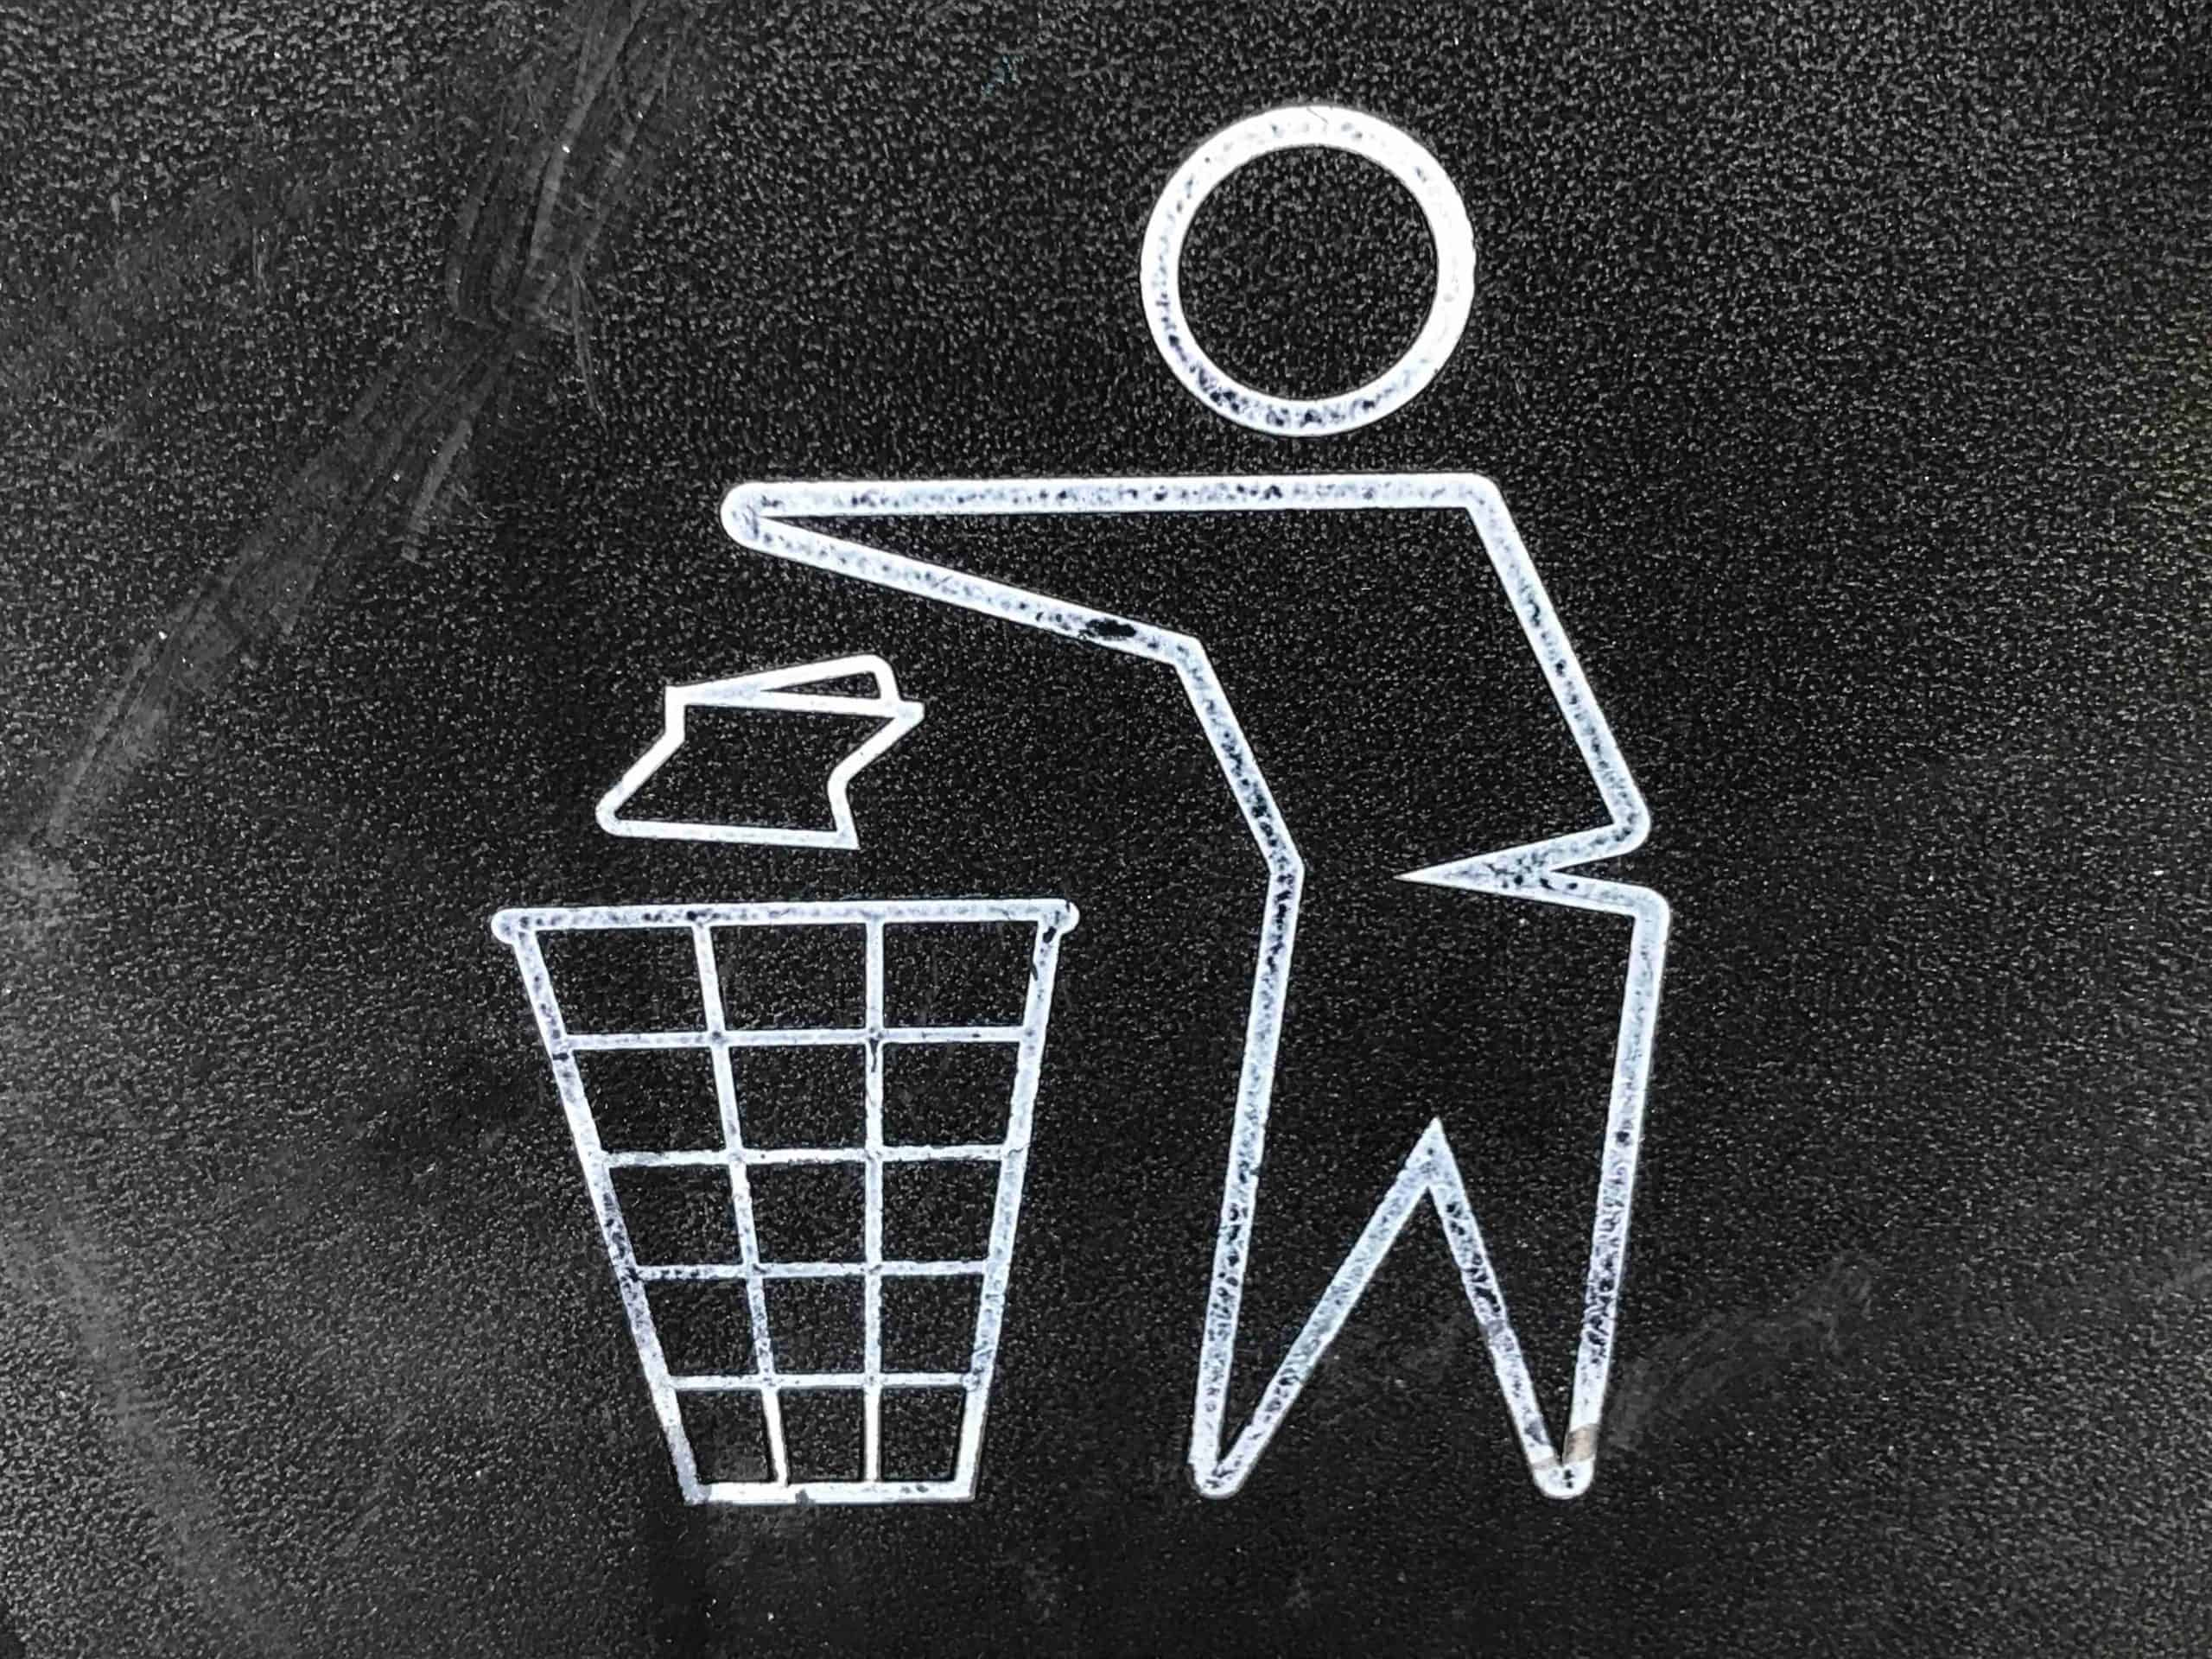 Drawing of a man tossing trash into a garbage can